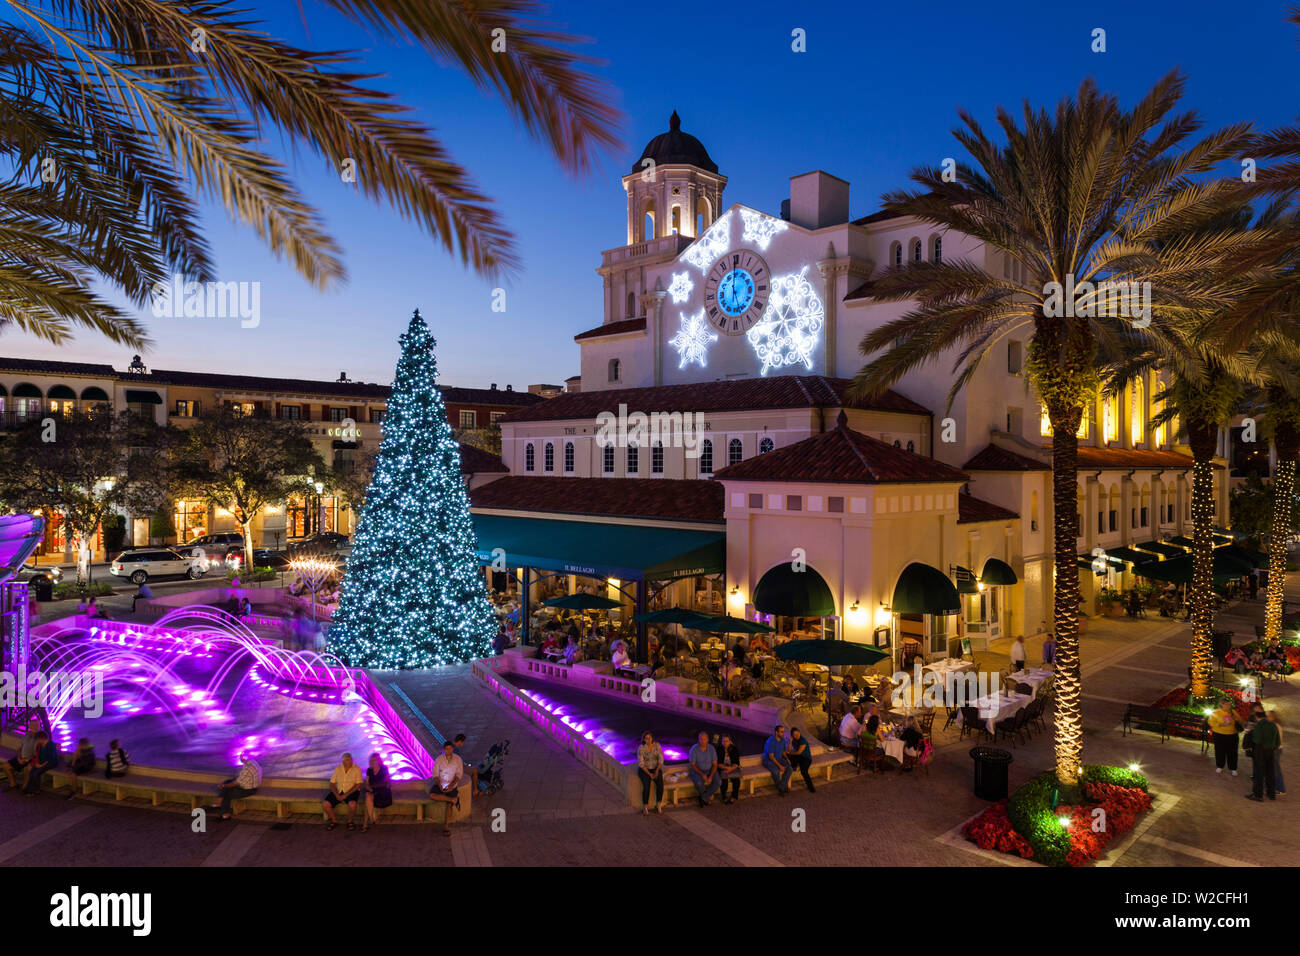 USA, Florida, West Palm Beach, City Place Mall, Harriet Himmel Theater during Christmas Holidays - Stock Image